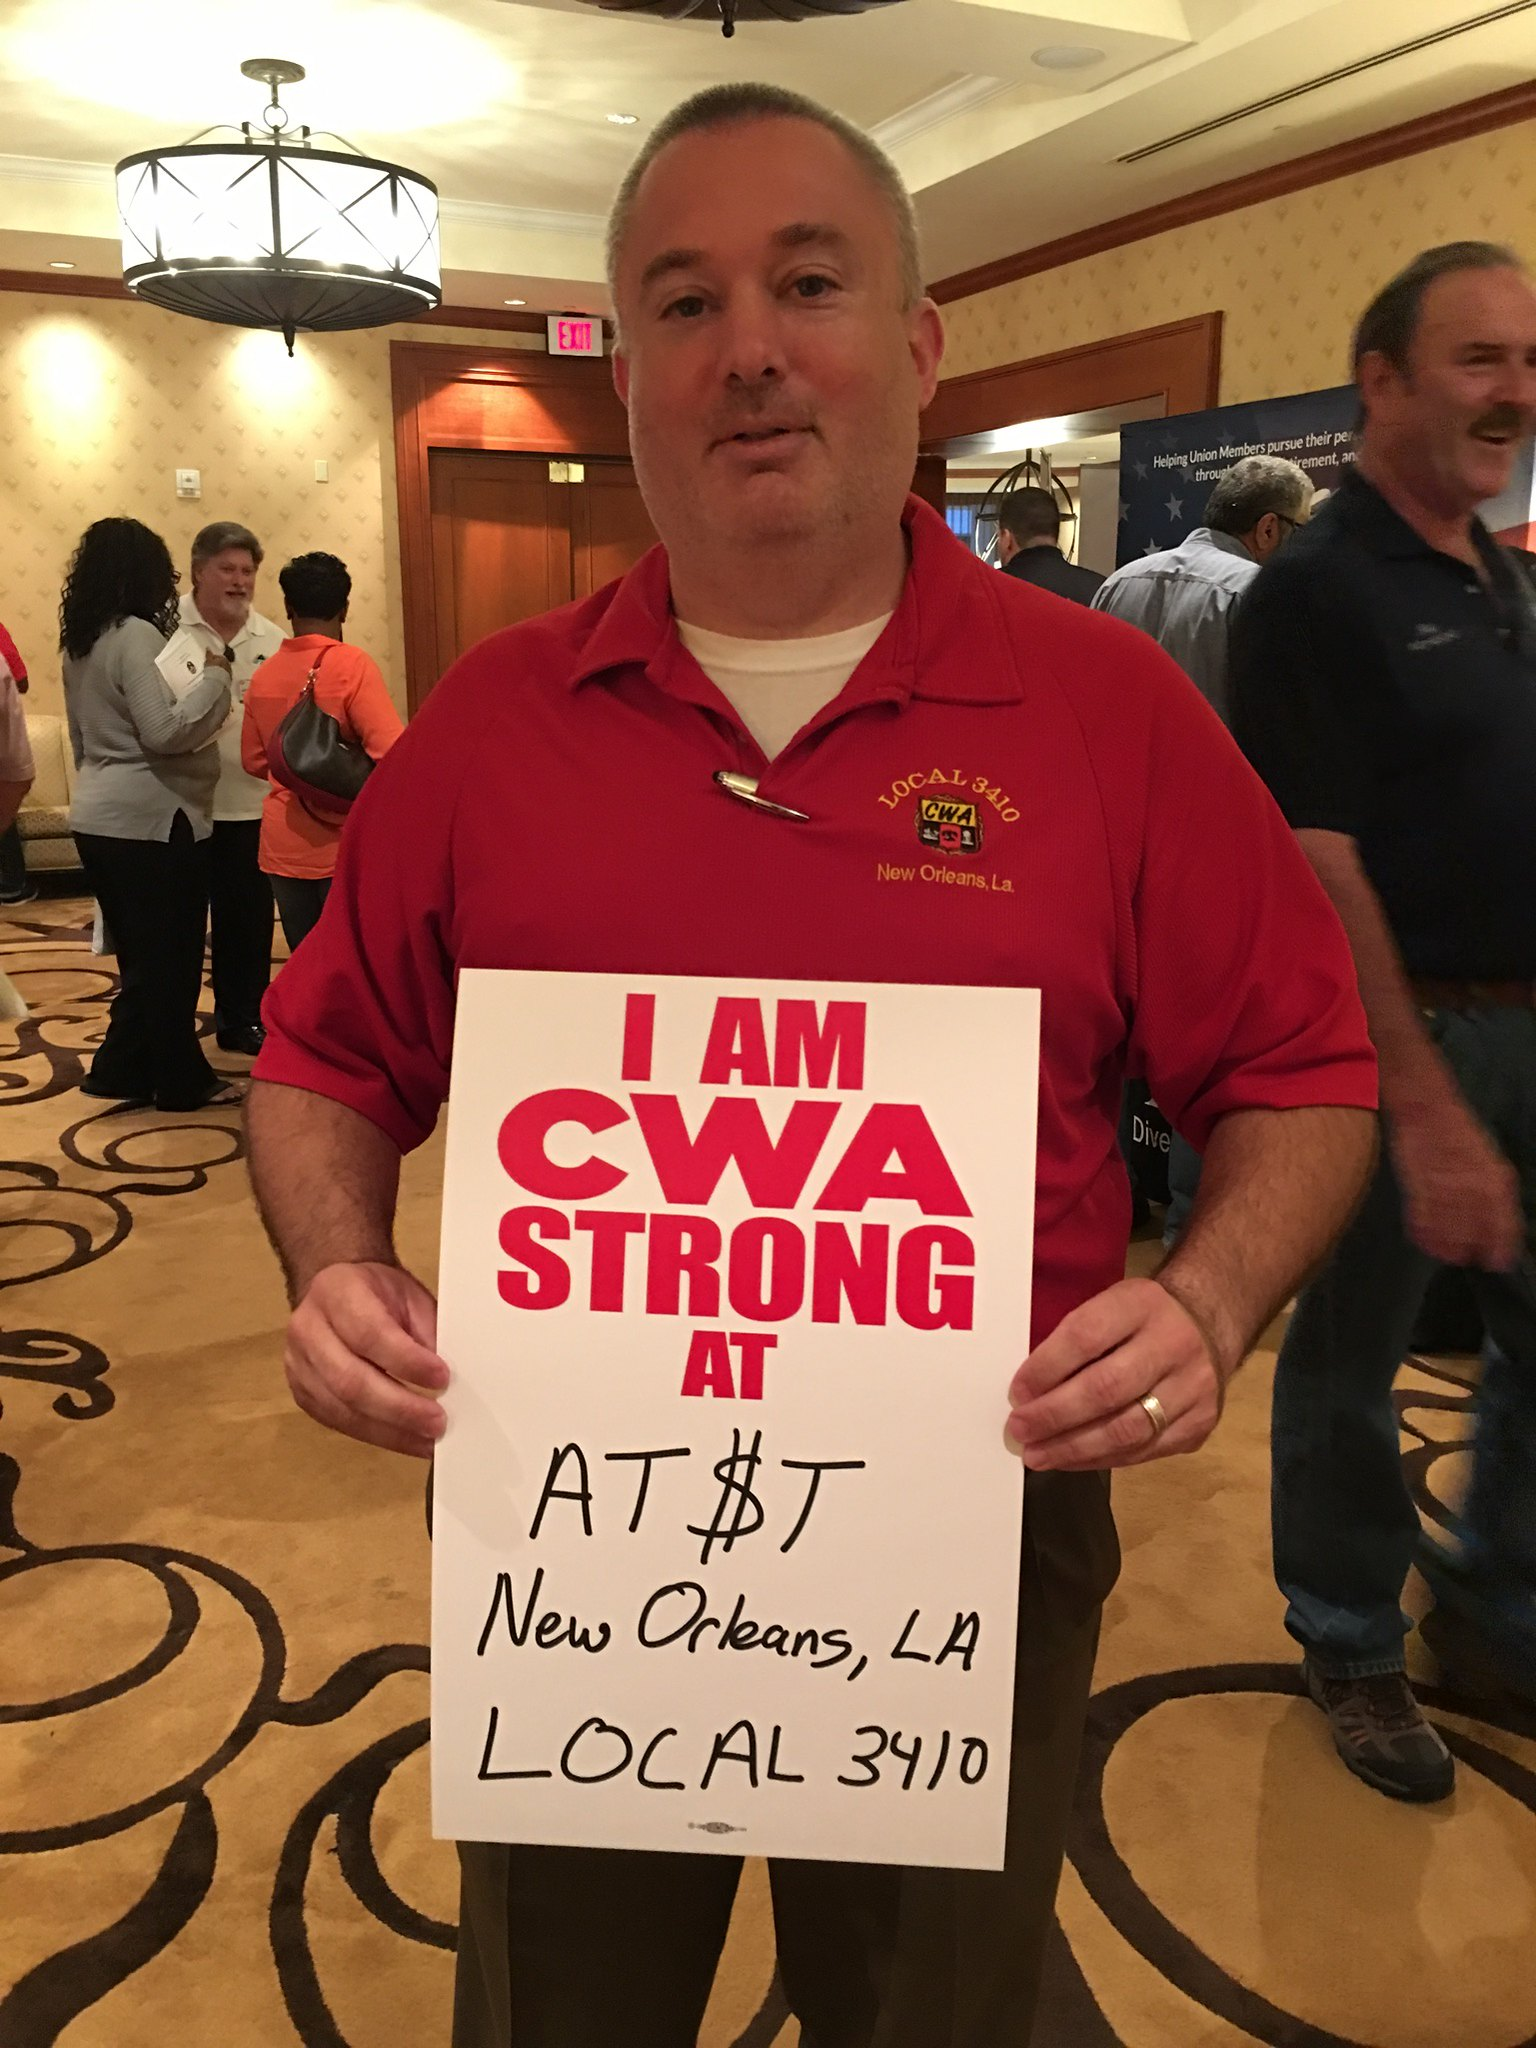 CWA STRONG at the 2017 District 3 Meeting